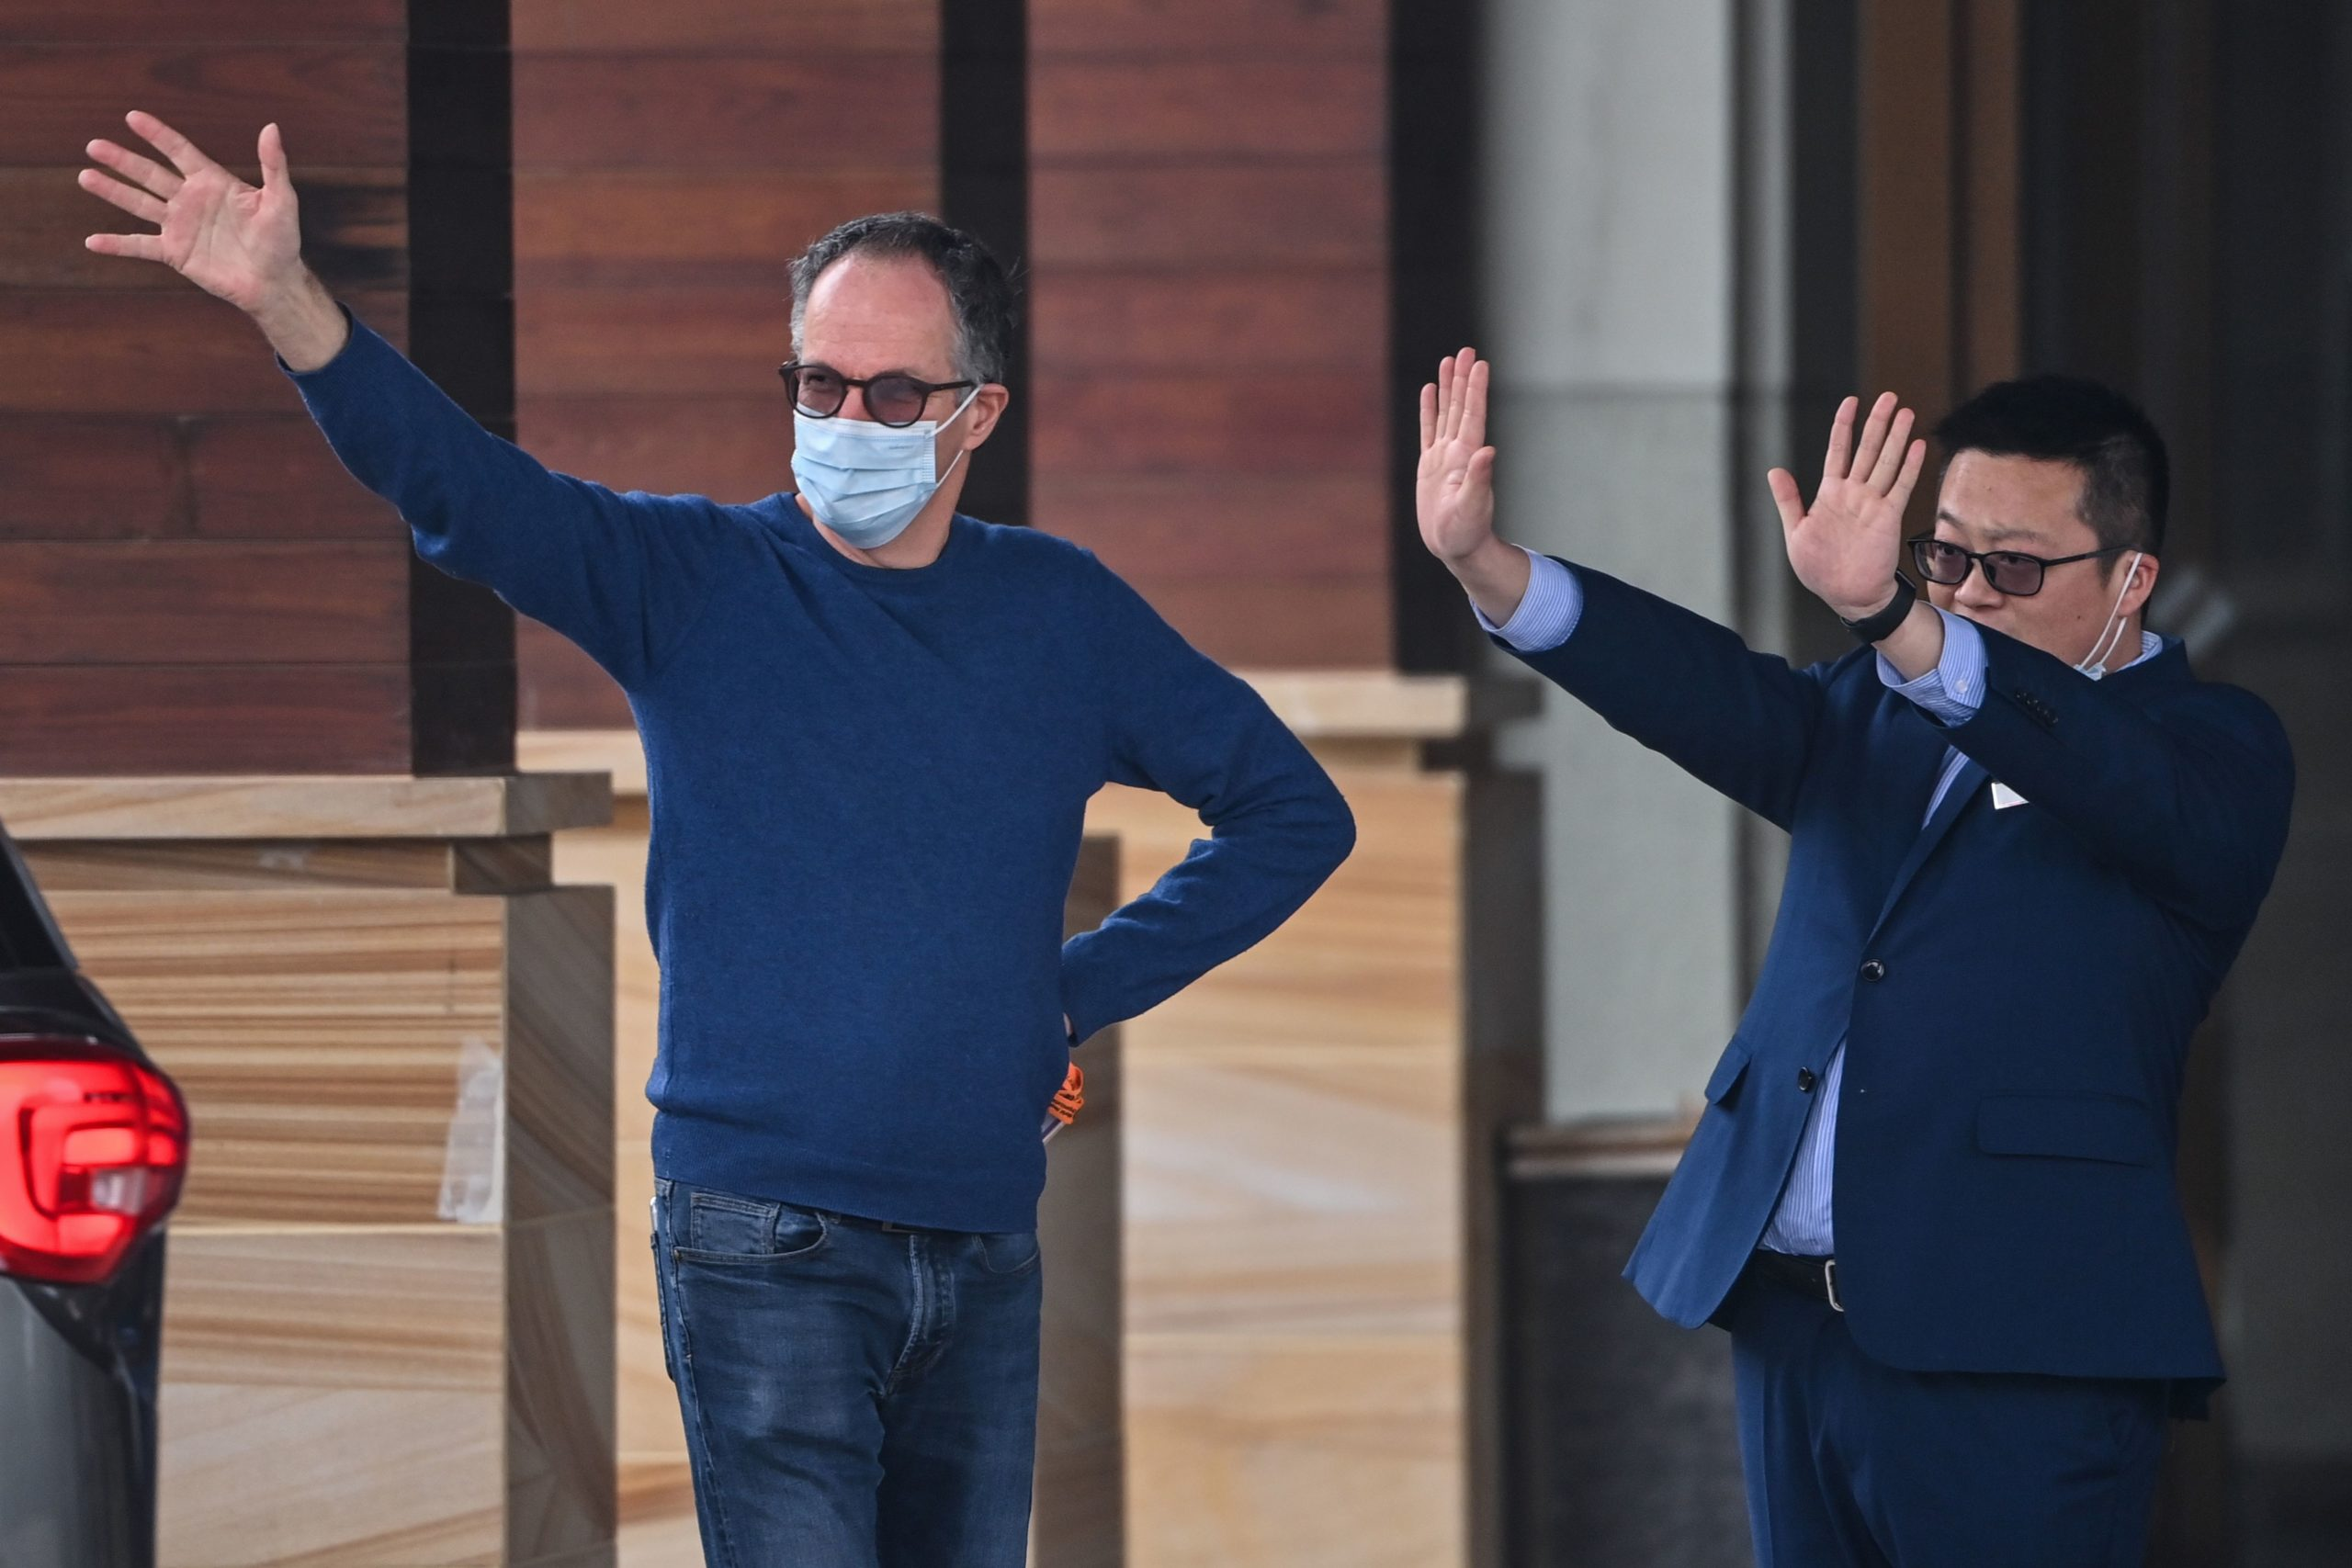 WHO team member Peter Ben Embarek (L) waves as group members Marion Koopmans and Peter Daszak leave their hotel after the World Health Organization (WHO) team wrapped up its investigation into the origins of the COVID-19 coronavirus in Wuhan in China's central Hubei province on February 10, 2021. (HECTOR RETAMAL/AFP via Getty Images)